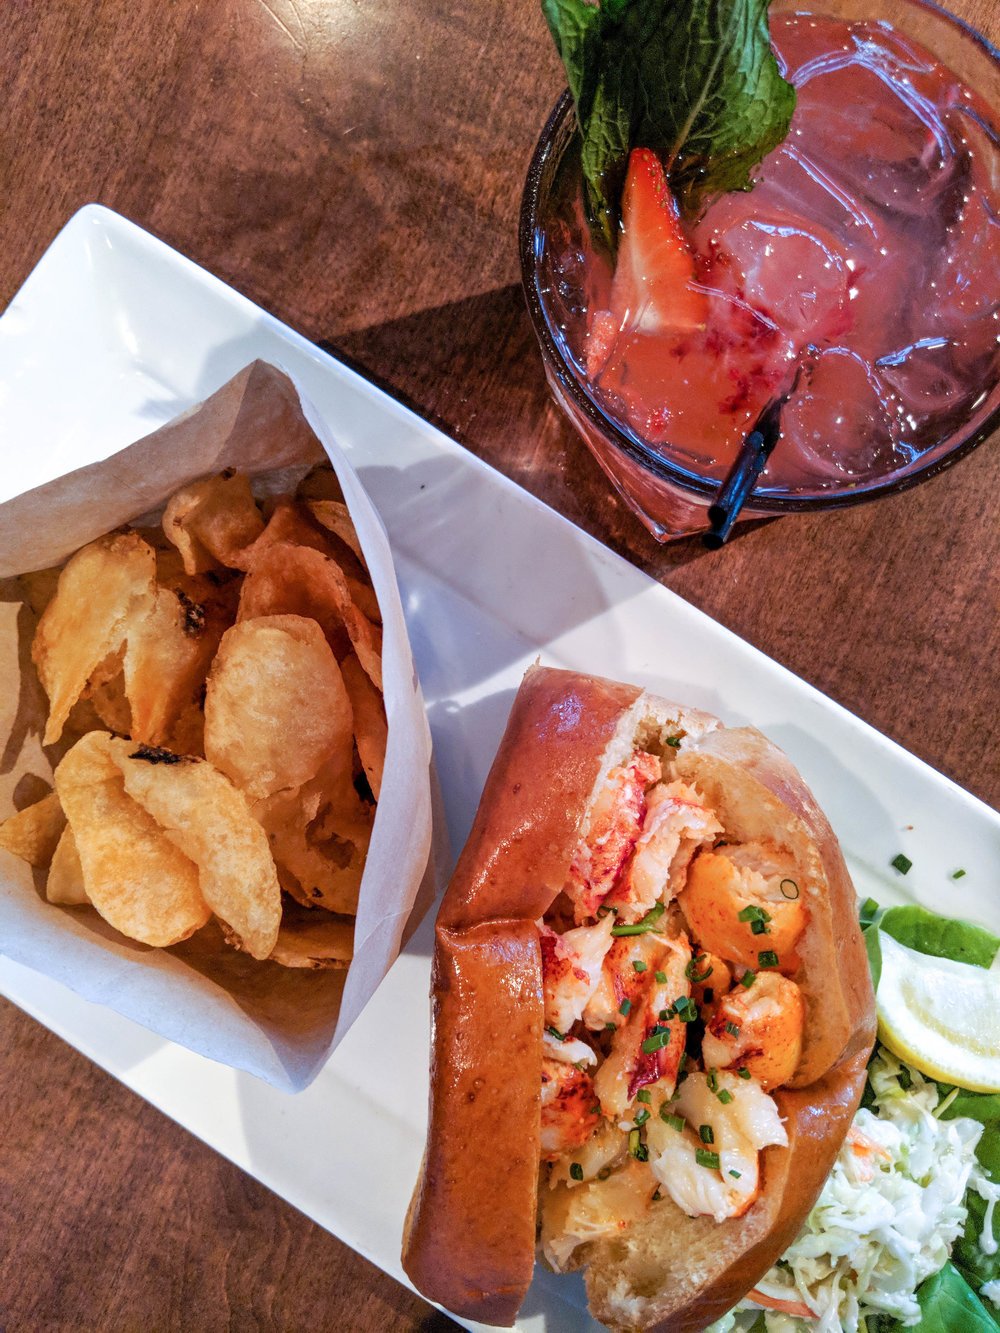 bri rinehart; central wharf co; photography; boston; lobster roll